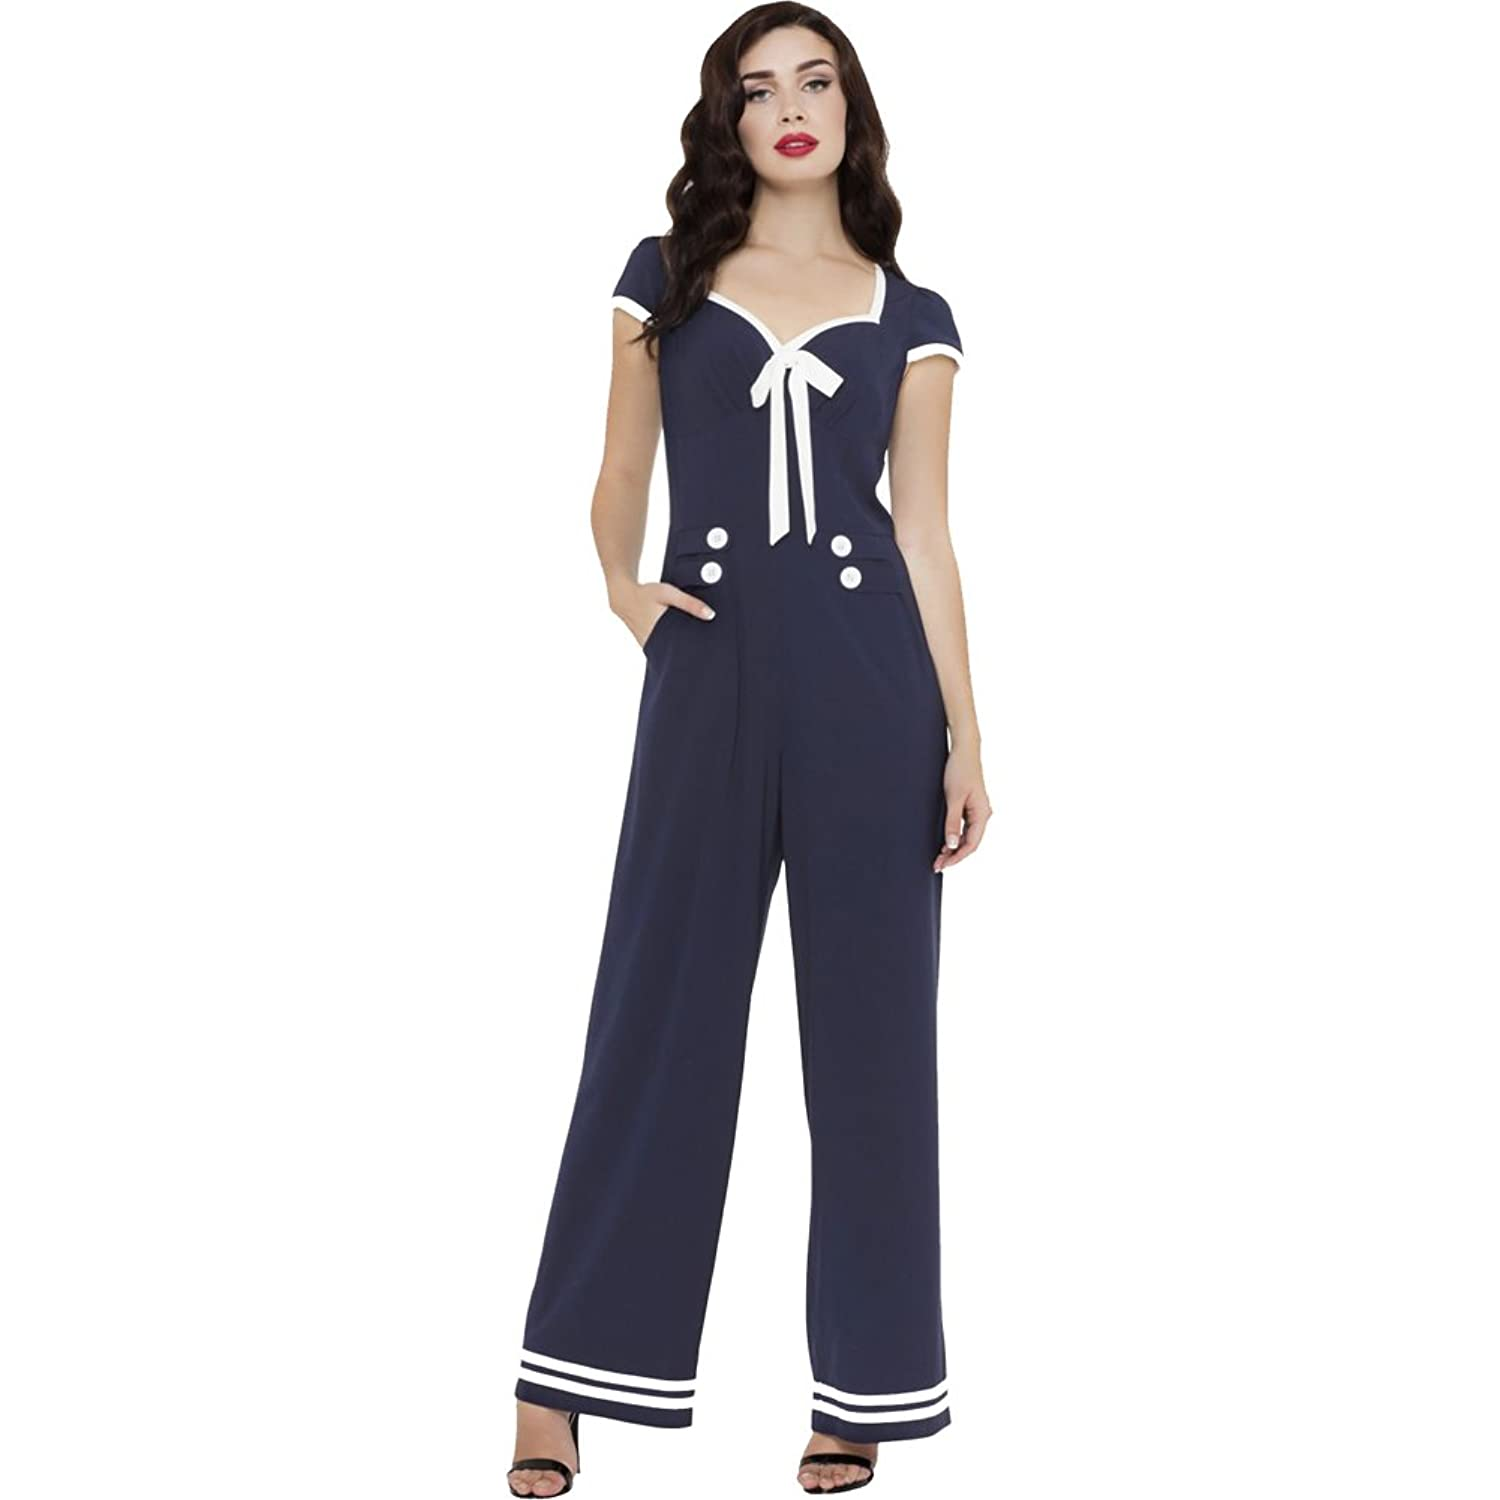 1940s Style Pants & Overalls- Wide Leg, High Waist Womens Voodoo Vixen JOLENE Nautical Stripped Wide Leg Jumpsuit Navy $73.95 AT vintagedancer.com